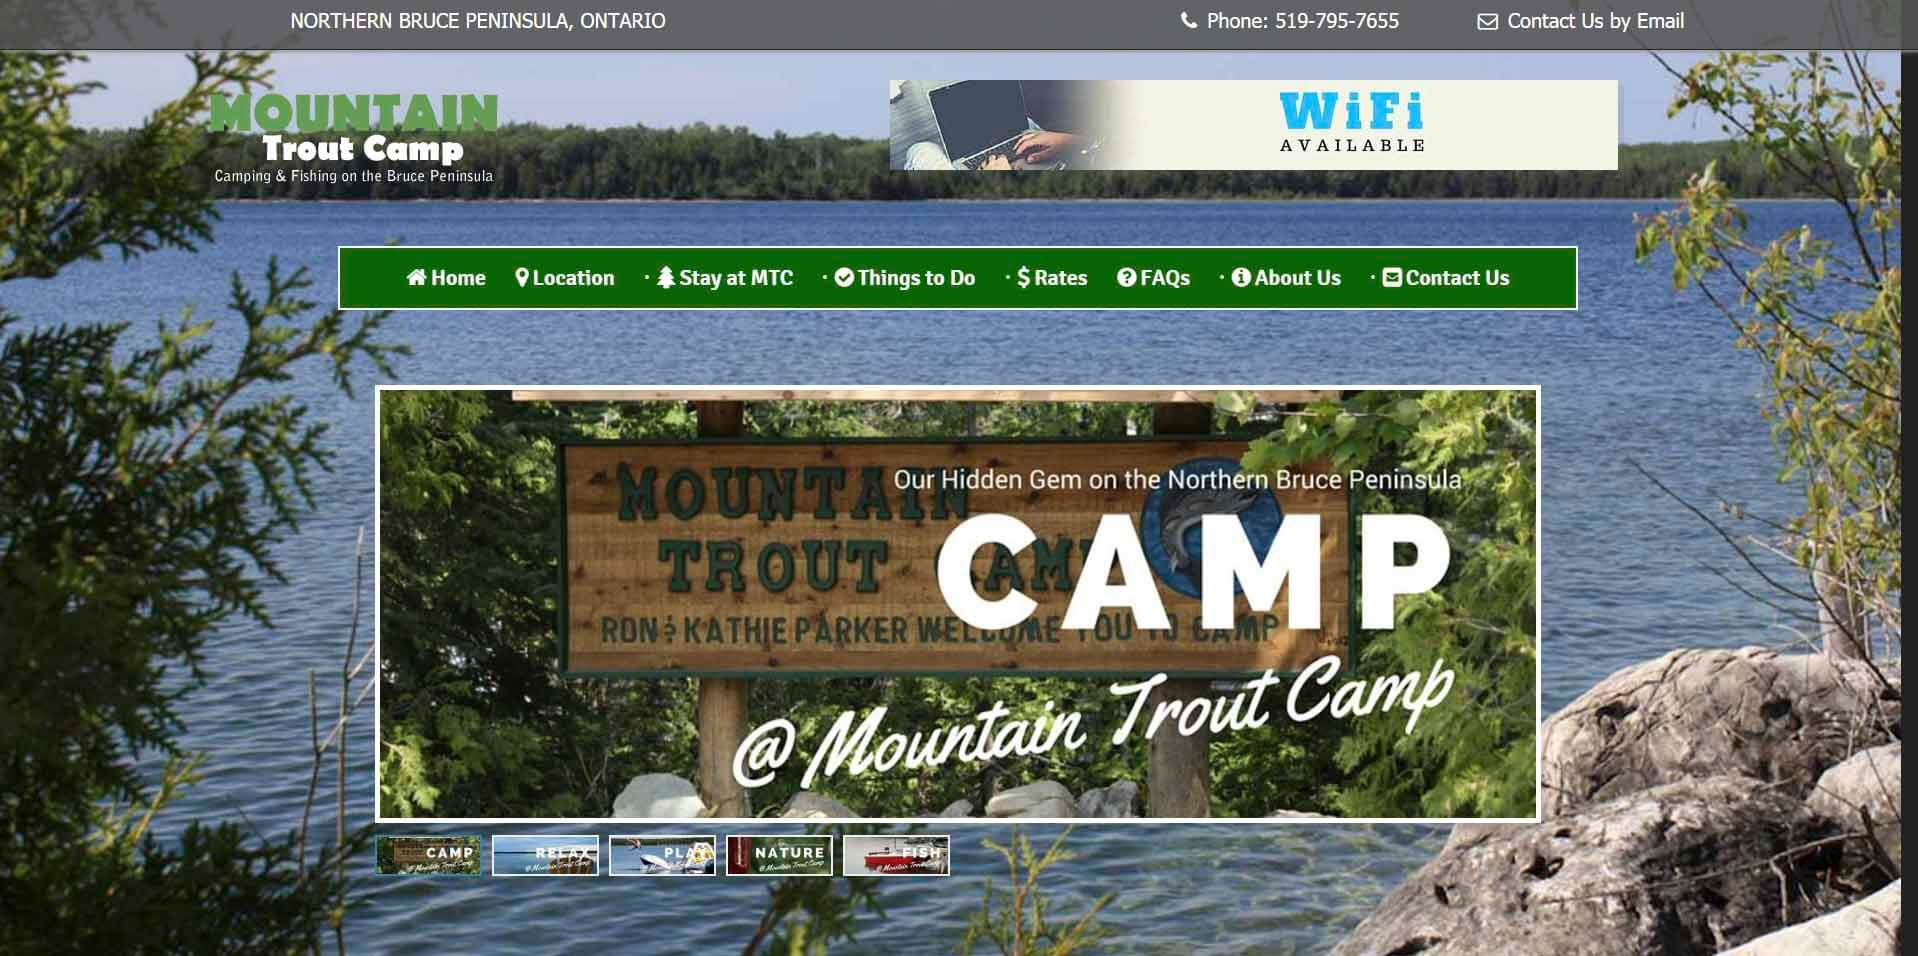 Mountain Trout Camp